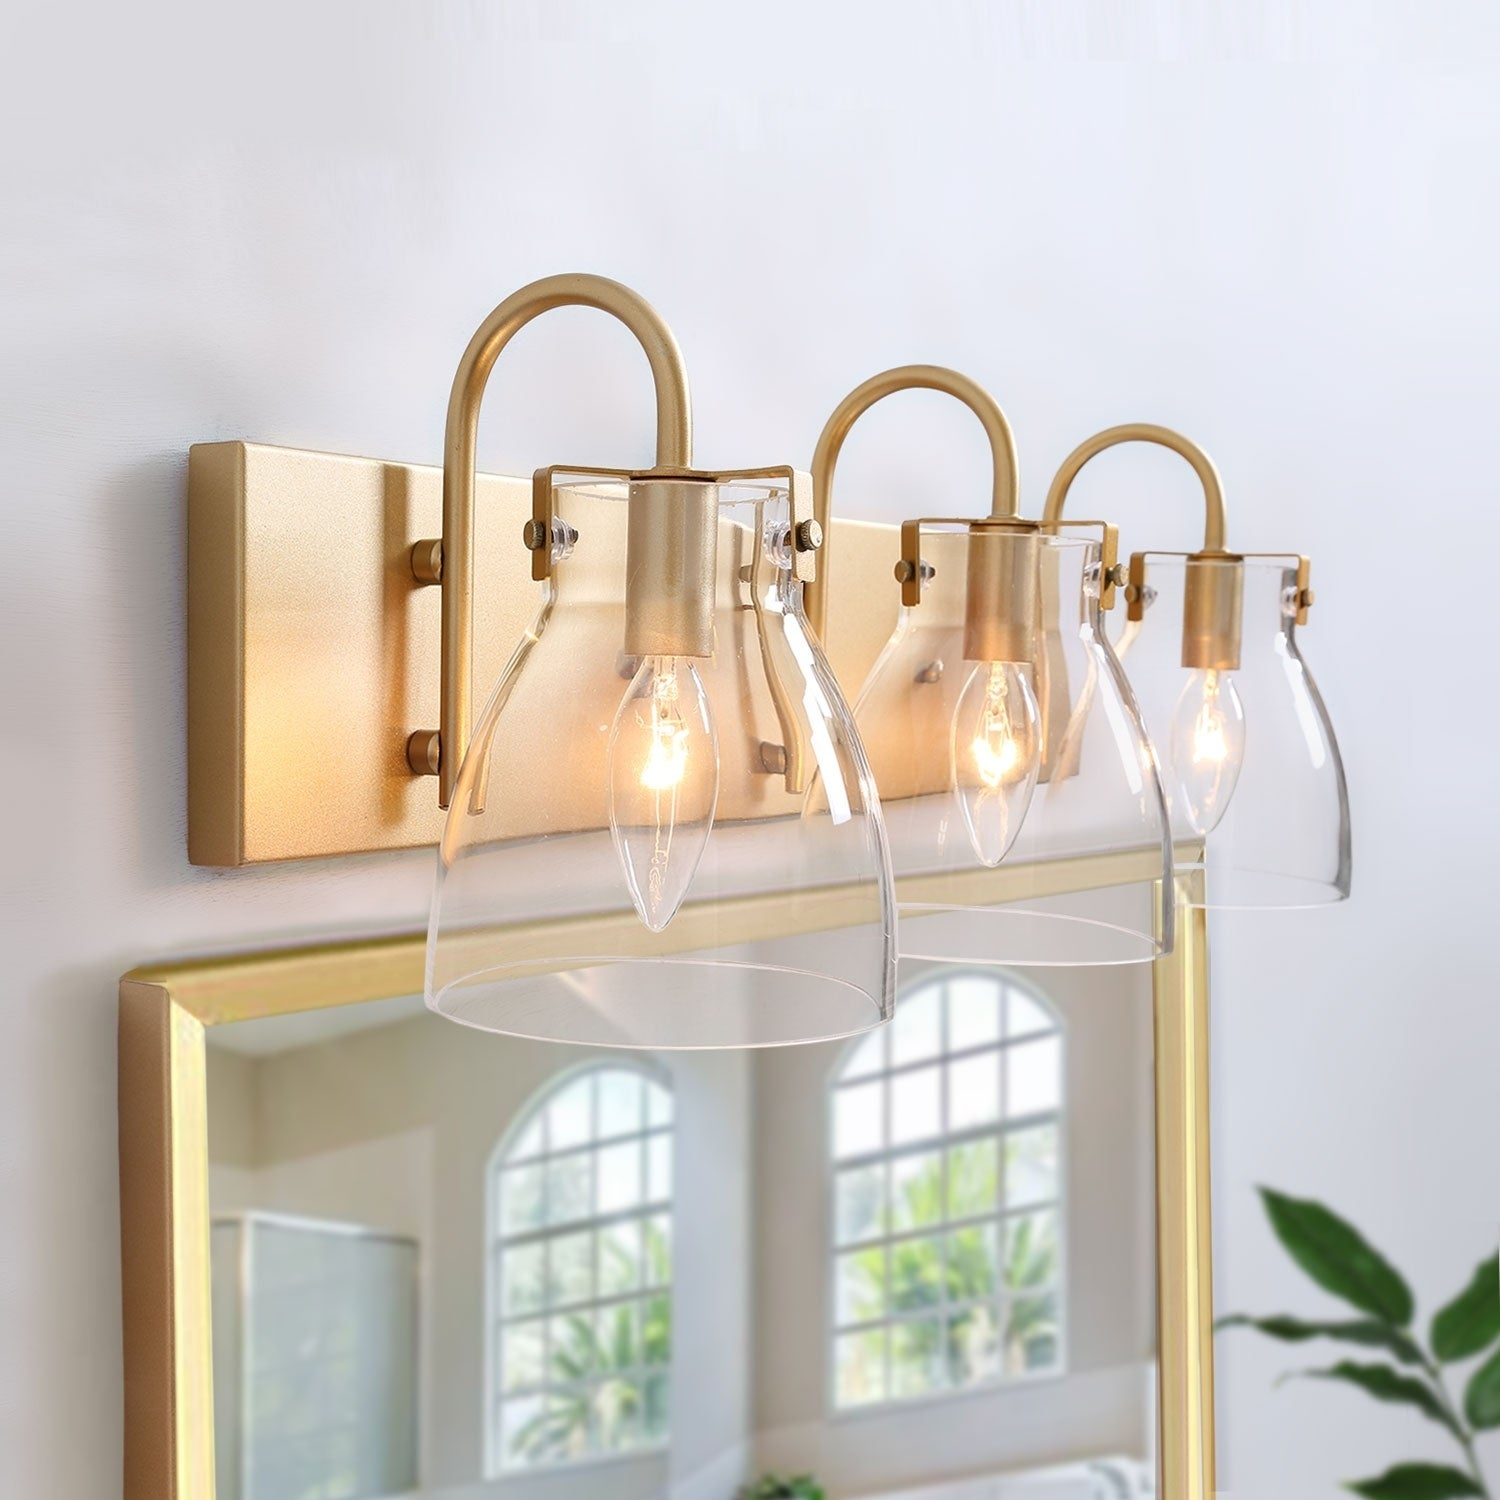 Lights Bathroom Vanity Lighting